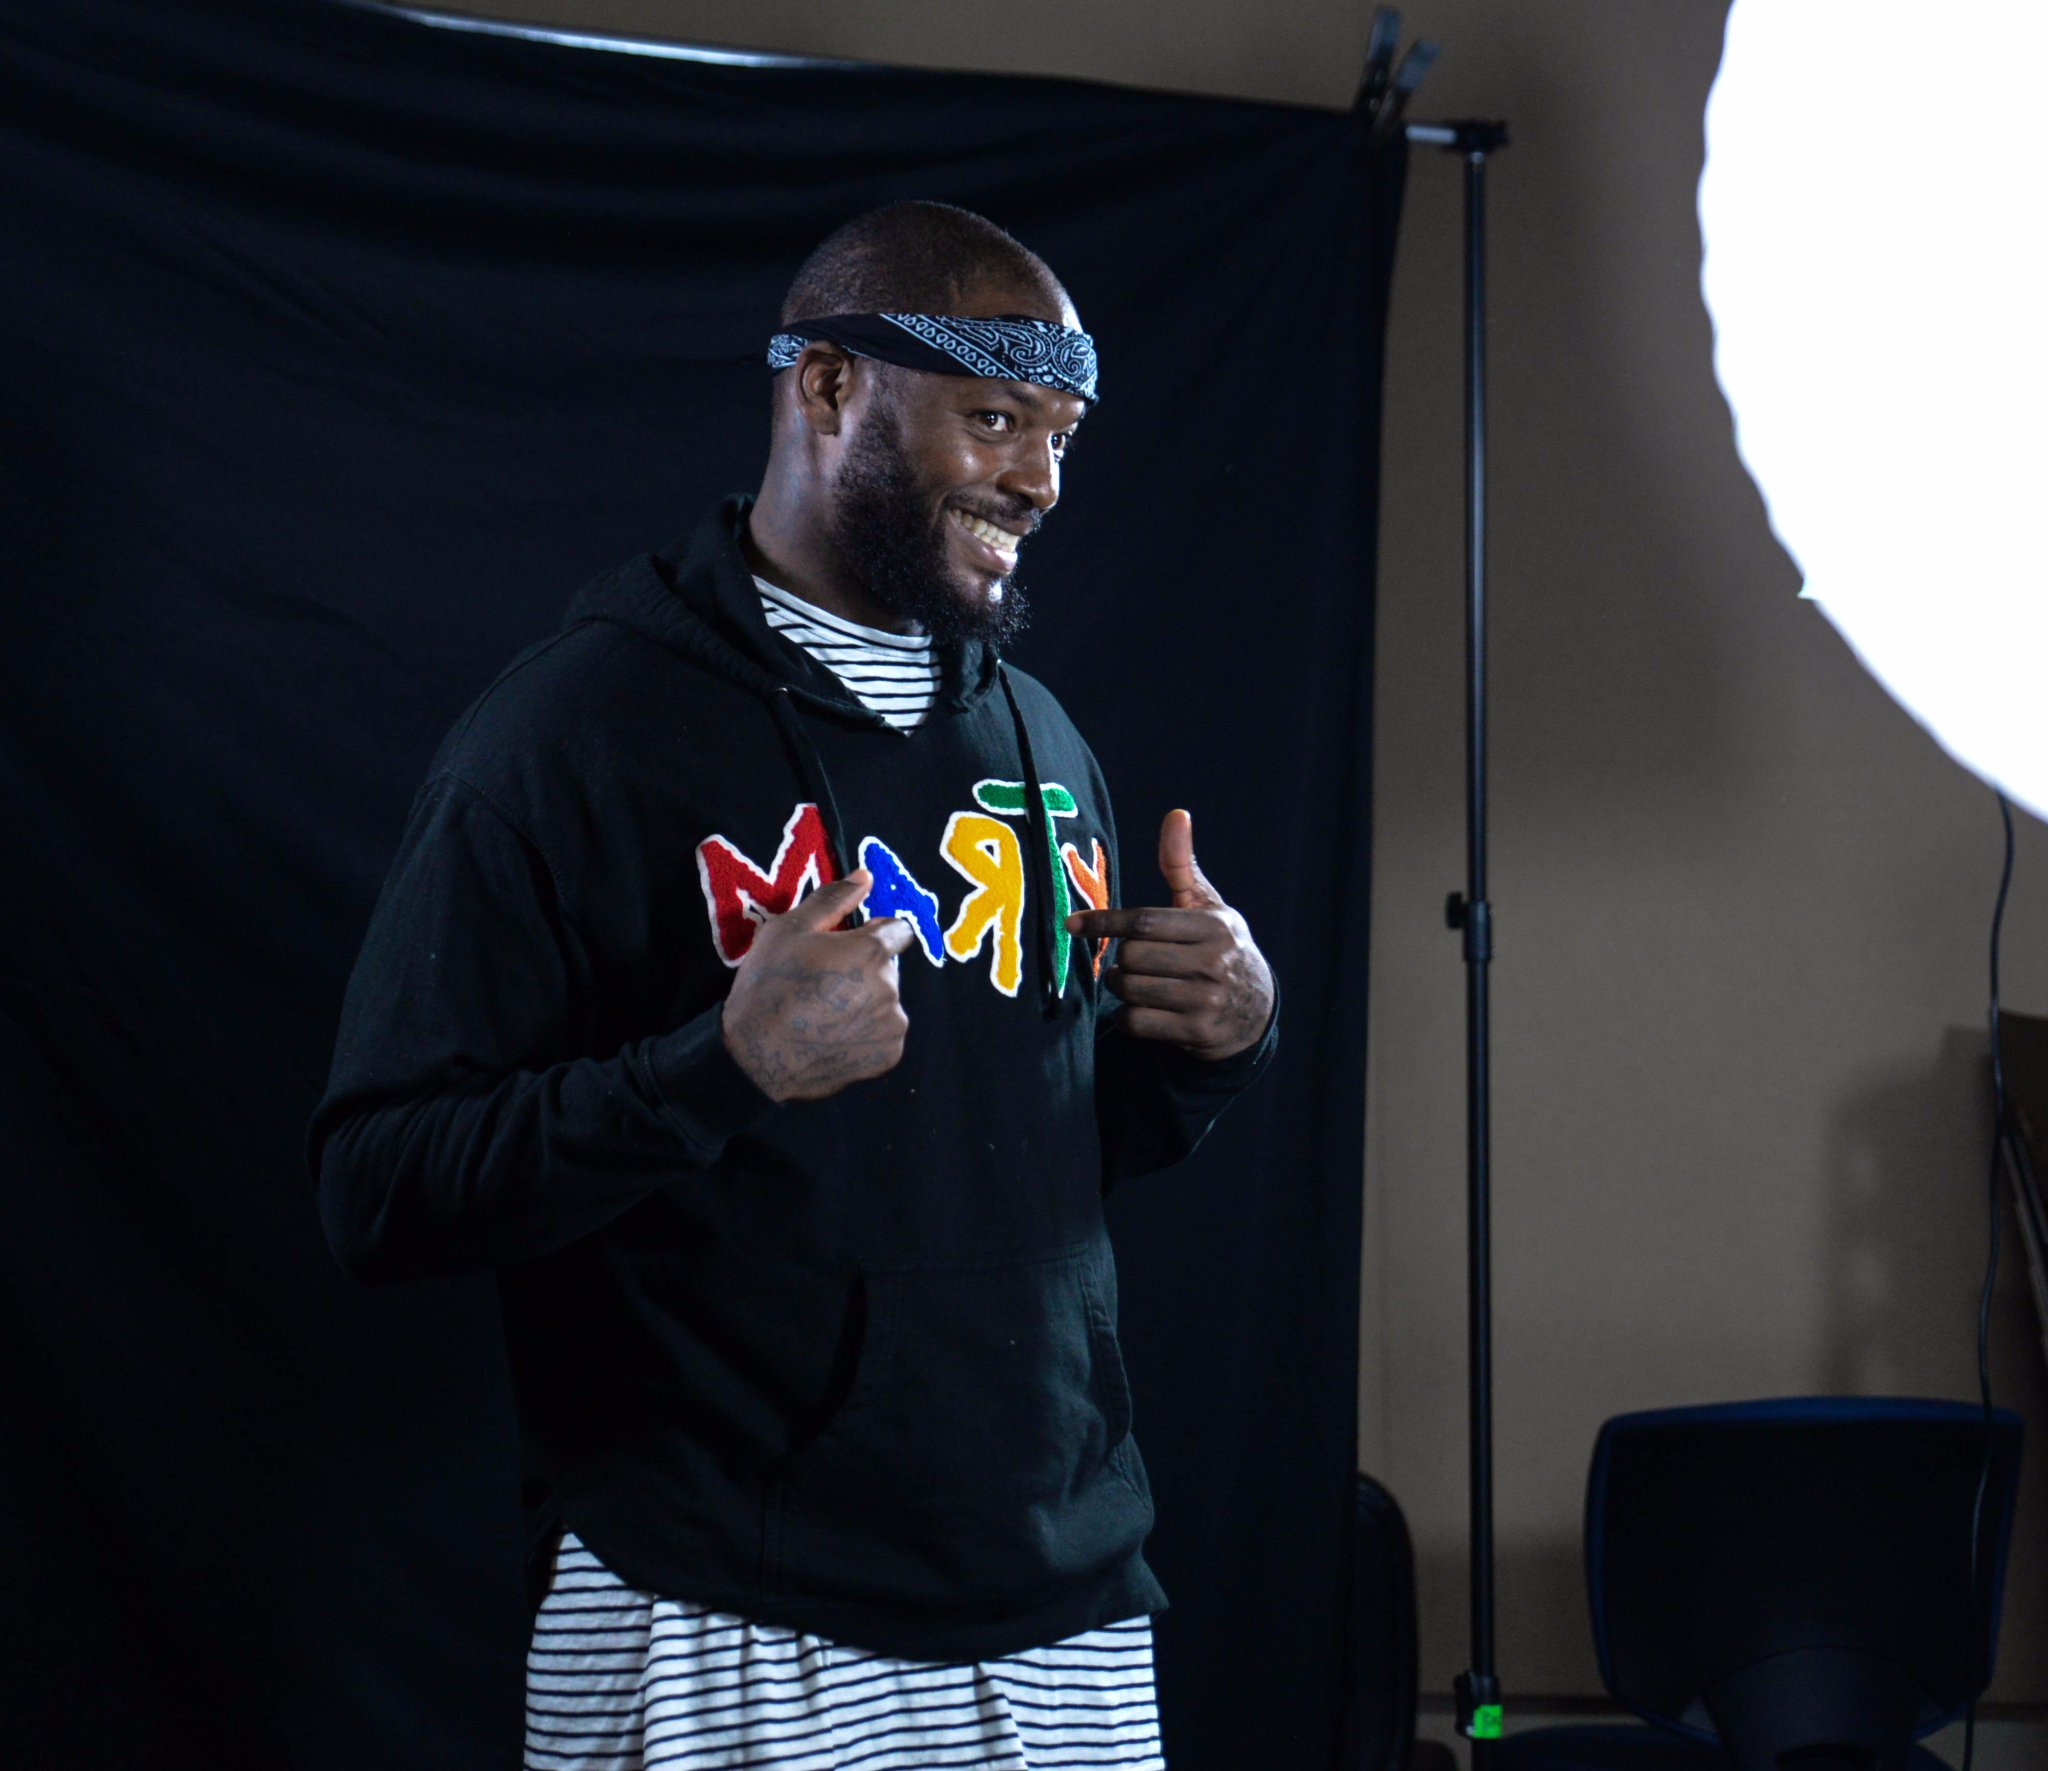 Take a behind-the-scenes look at @MartysaurusRex's #Packers @GIPHY shoot!   ��: https://t.co/PJWjkX28BD  #GoPackGo https://t.co/X0PlgwPMxL